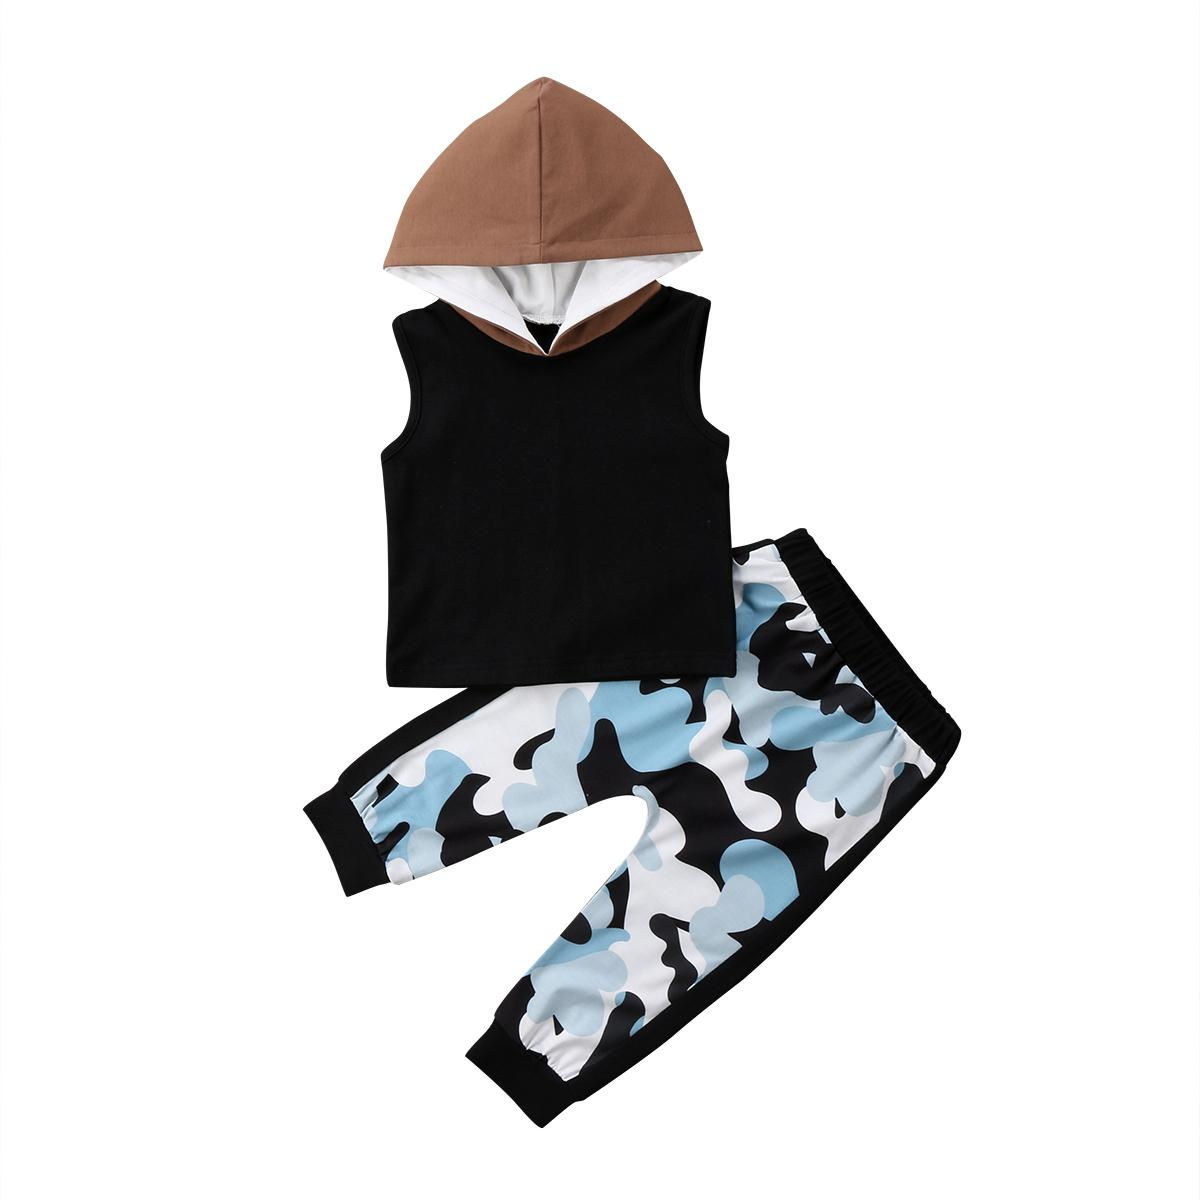 07226ce28 Newborn Kids Baby Girl Boy Tops Hooded Vest Camouflage Pants Outfits ...